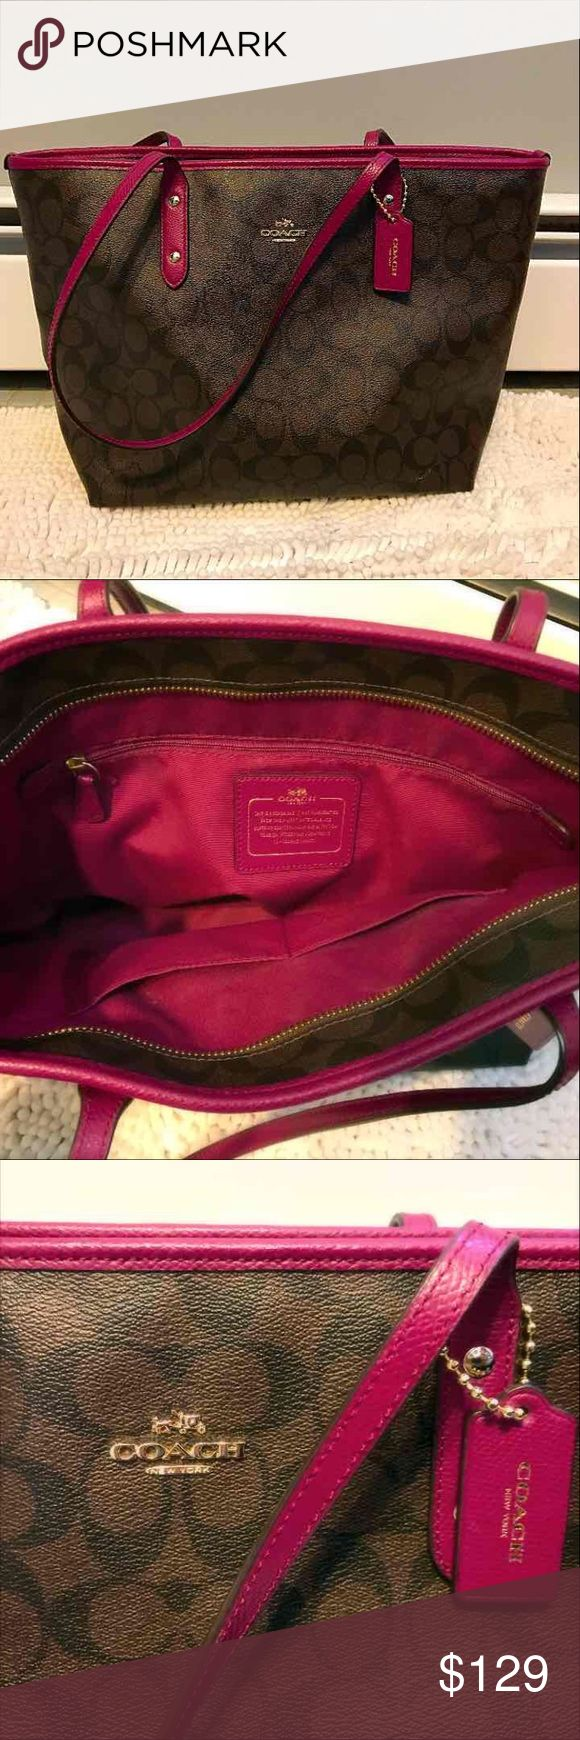 Authentic Coach tote bag Beautiful authentic Coach tote bag in brown with fuchsia trim. I've used this bag maybe 3 times but I needed something bigger for work. It's lightweight and perfect for the summer! Listing price is negotiable. Thanks for looking!  Purchased for $299 Coach Bags Shoulder Bags